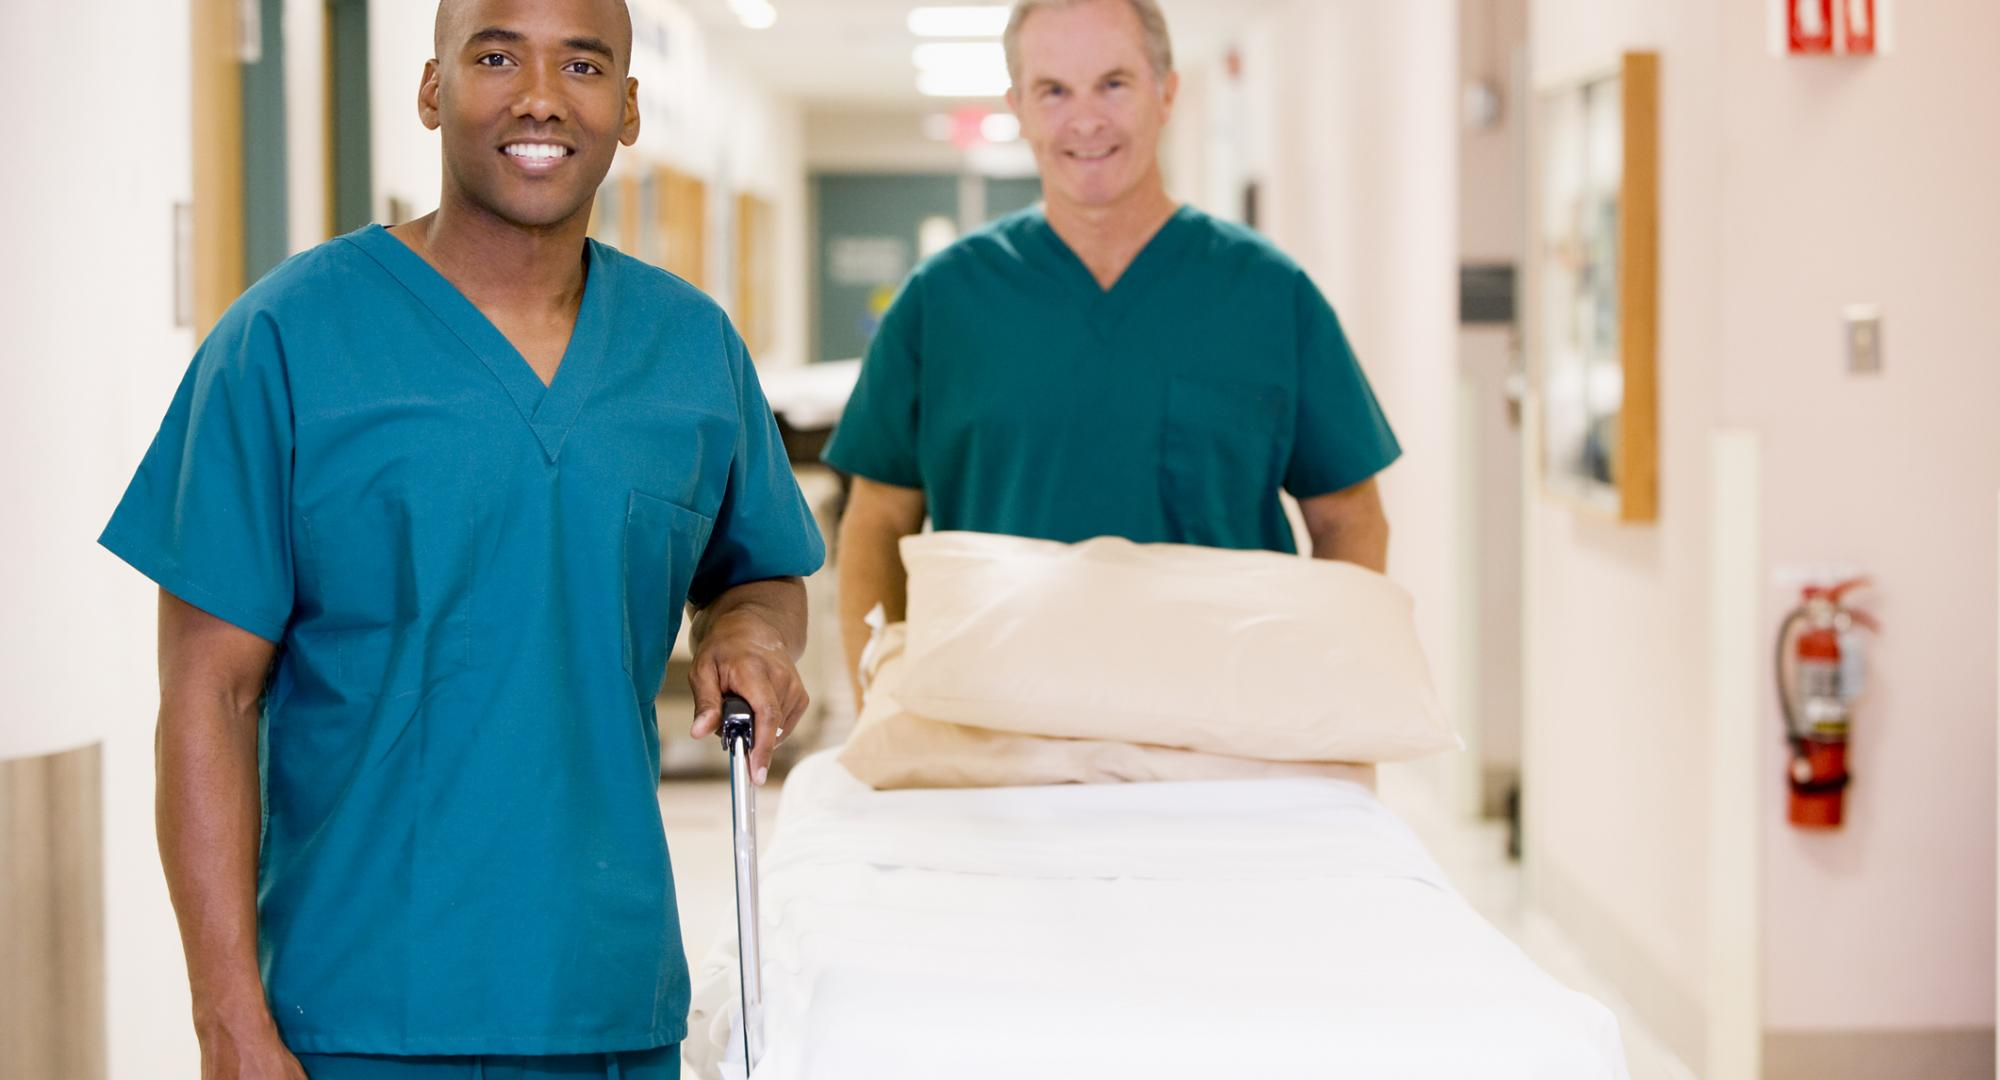 Two porters moving resources around the hospital